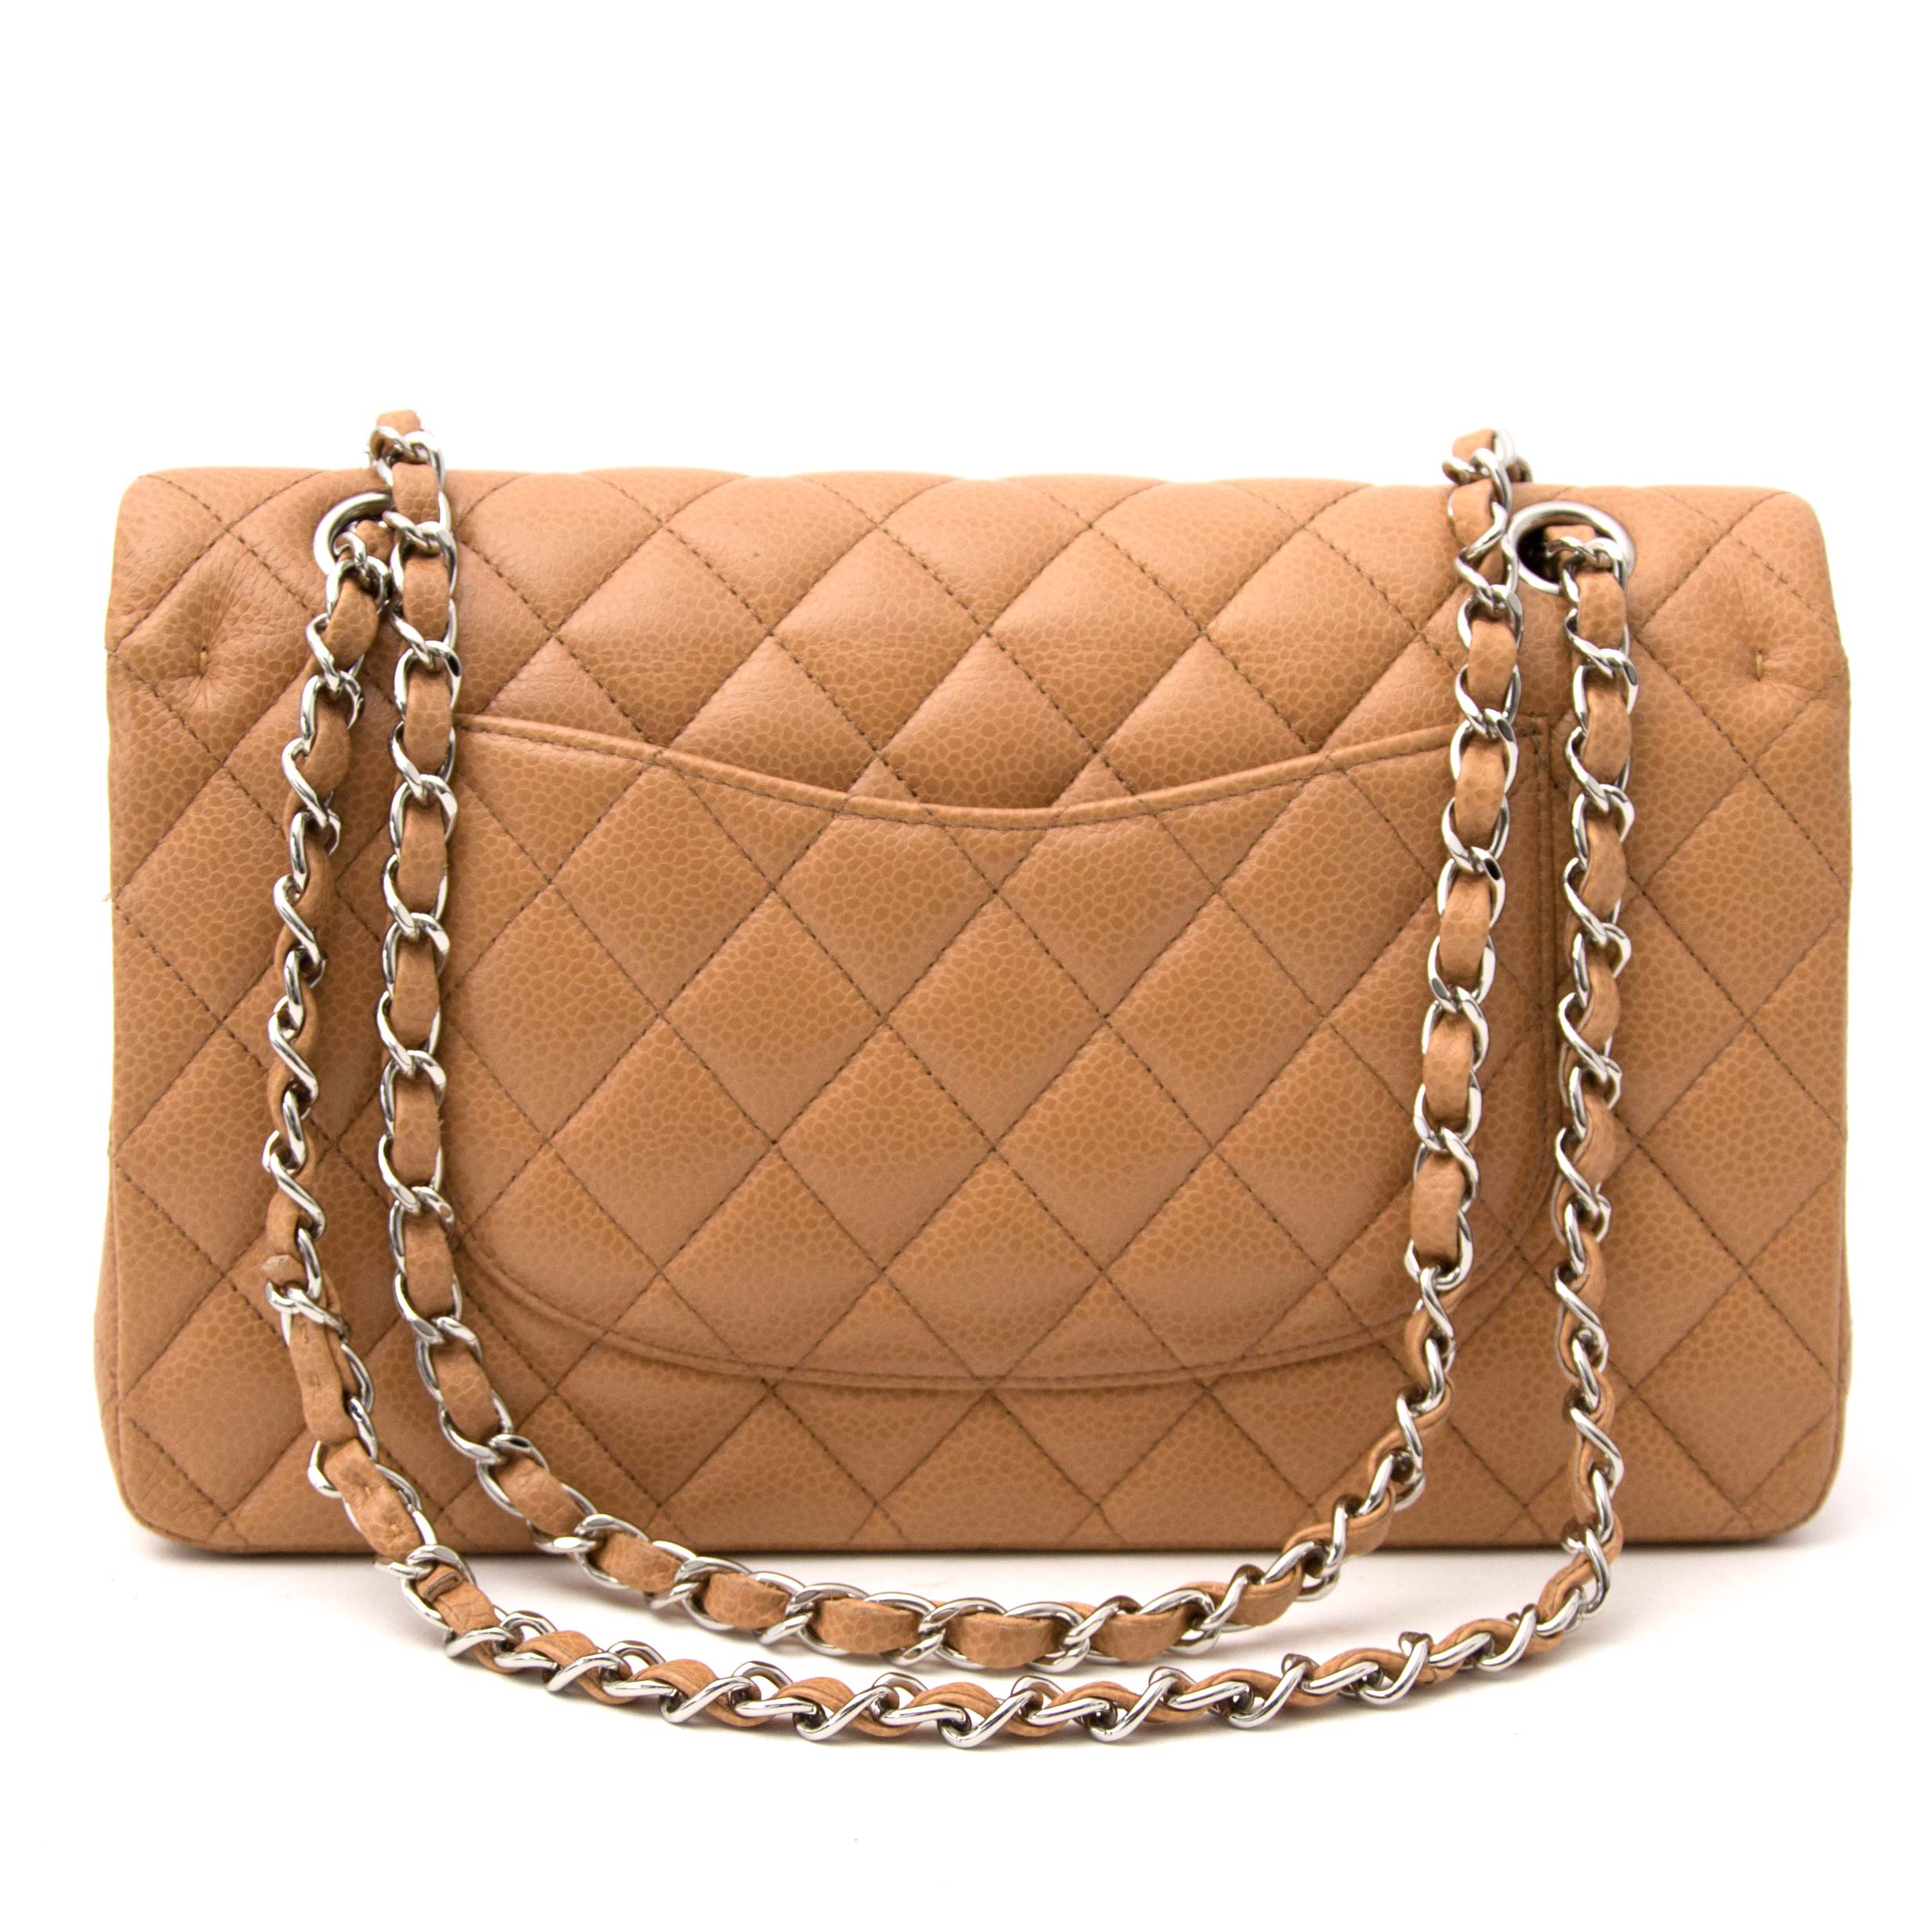 Chanel Beige Caviar Medium Classic Double Flap Bag  te koop